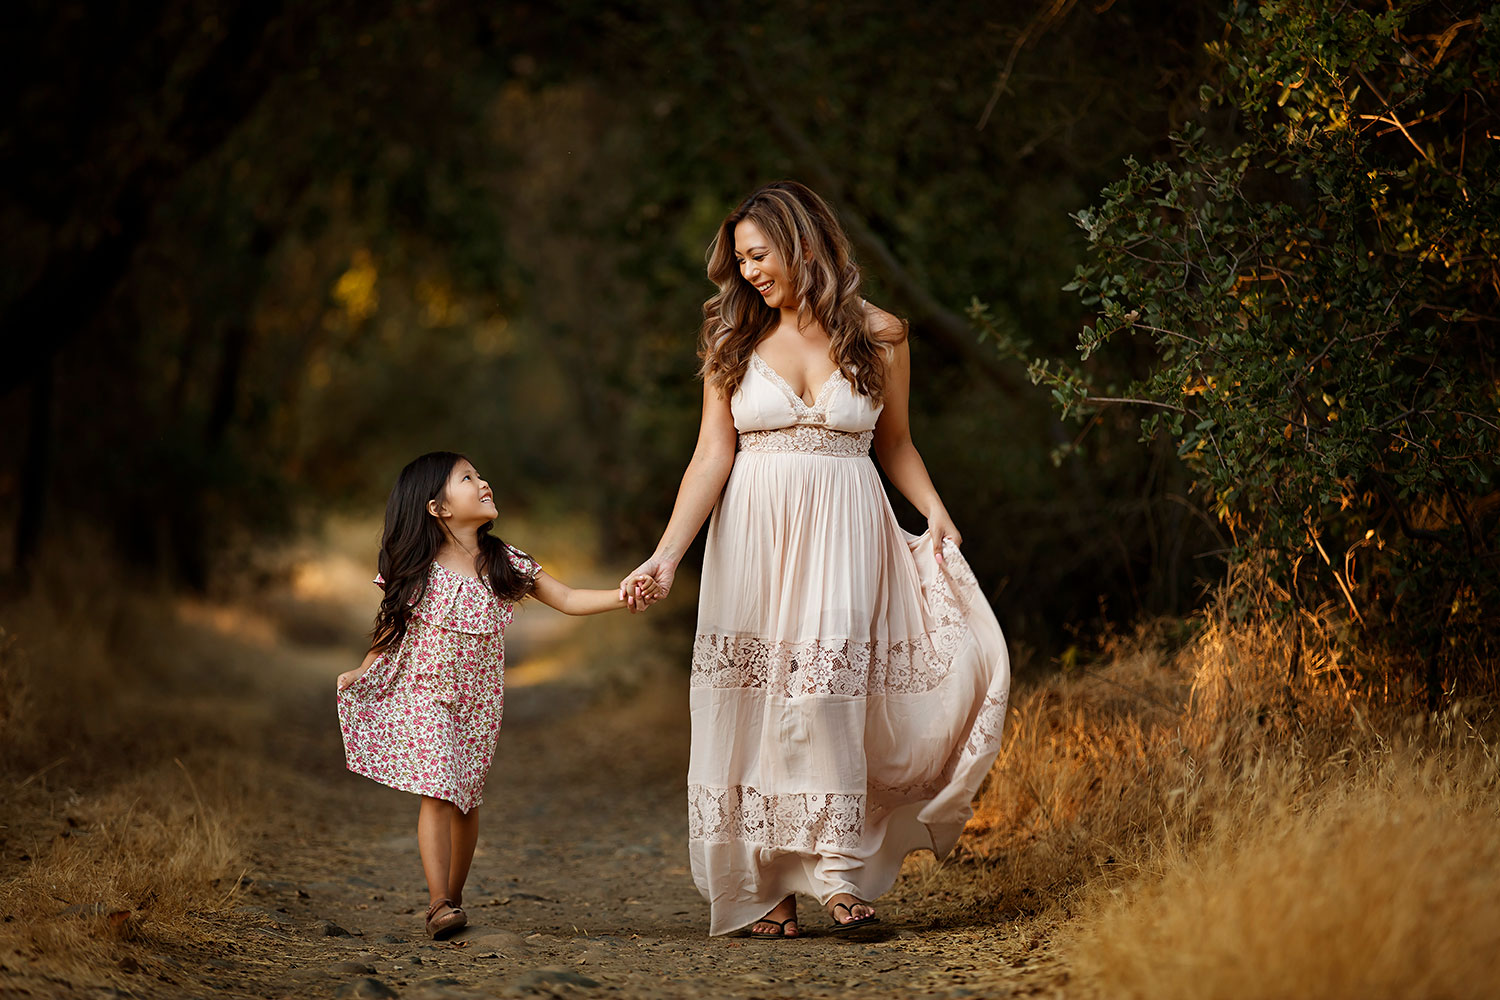 Family Pictures Outfit Ideas And Tips Bidun Art